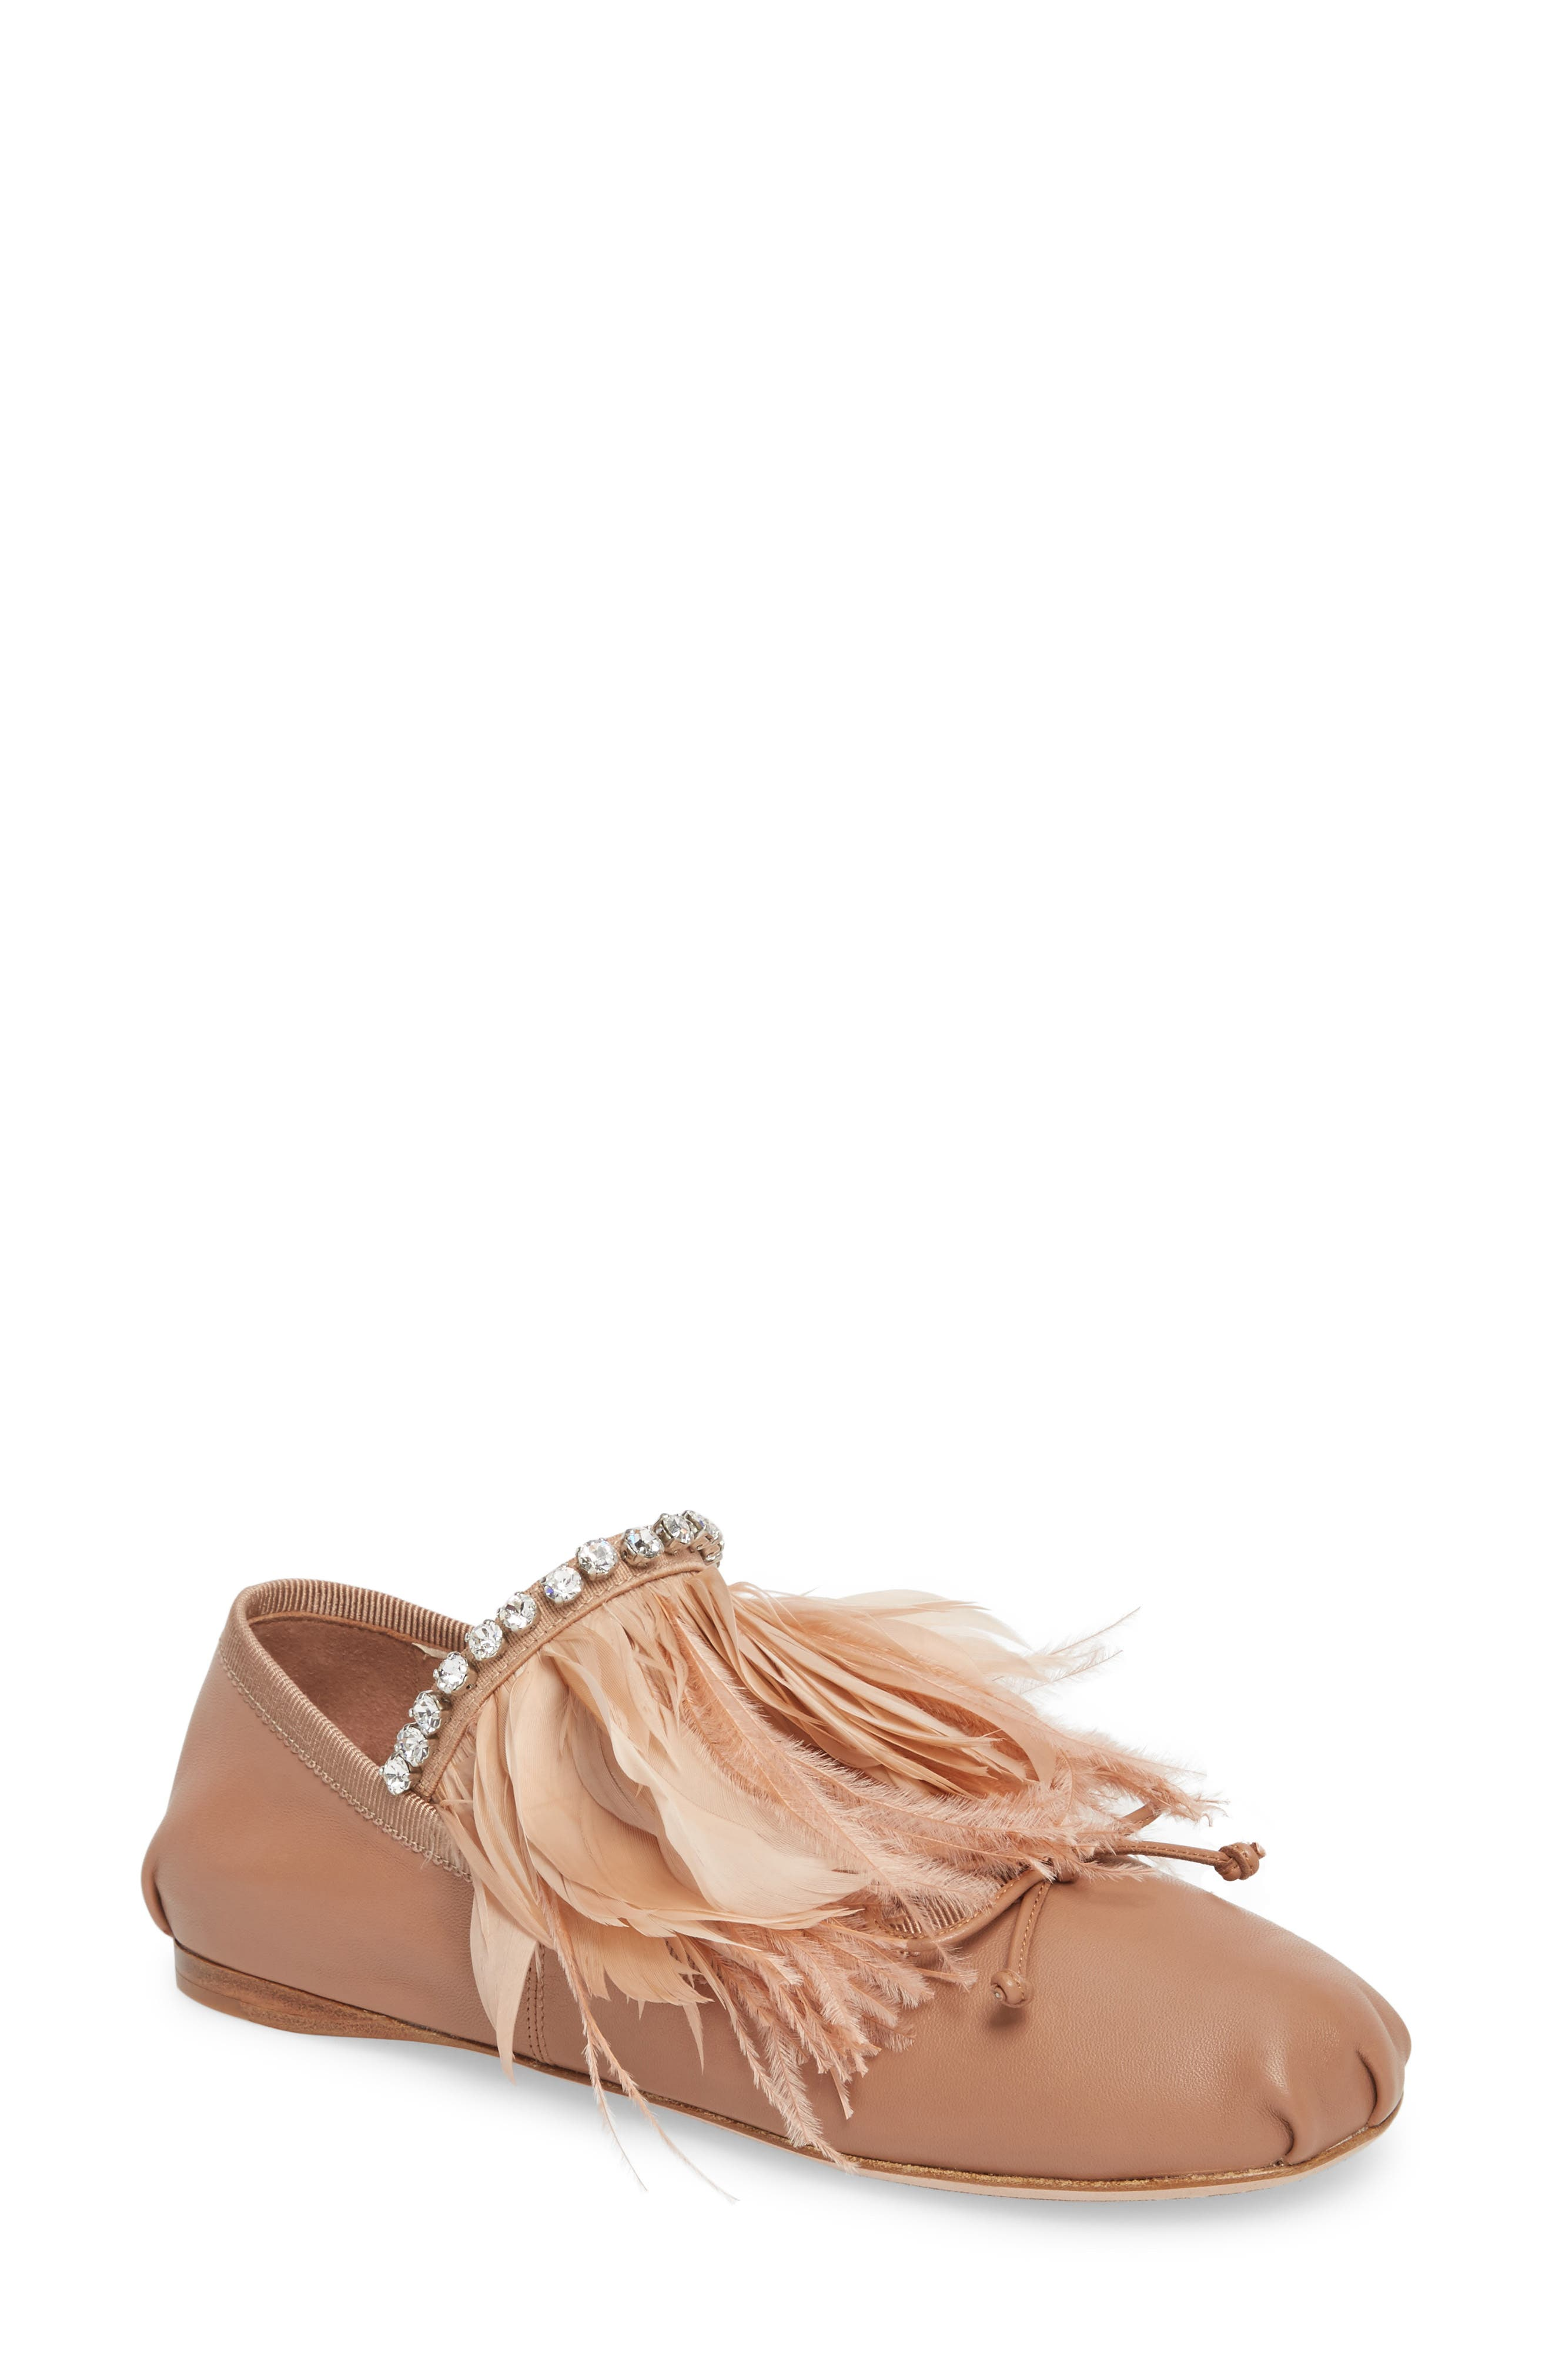 Feather Embellished Ballet Flat,                             Main thumbnail 1, color,